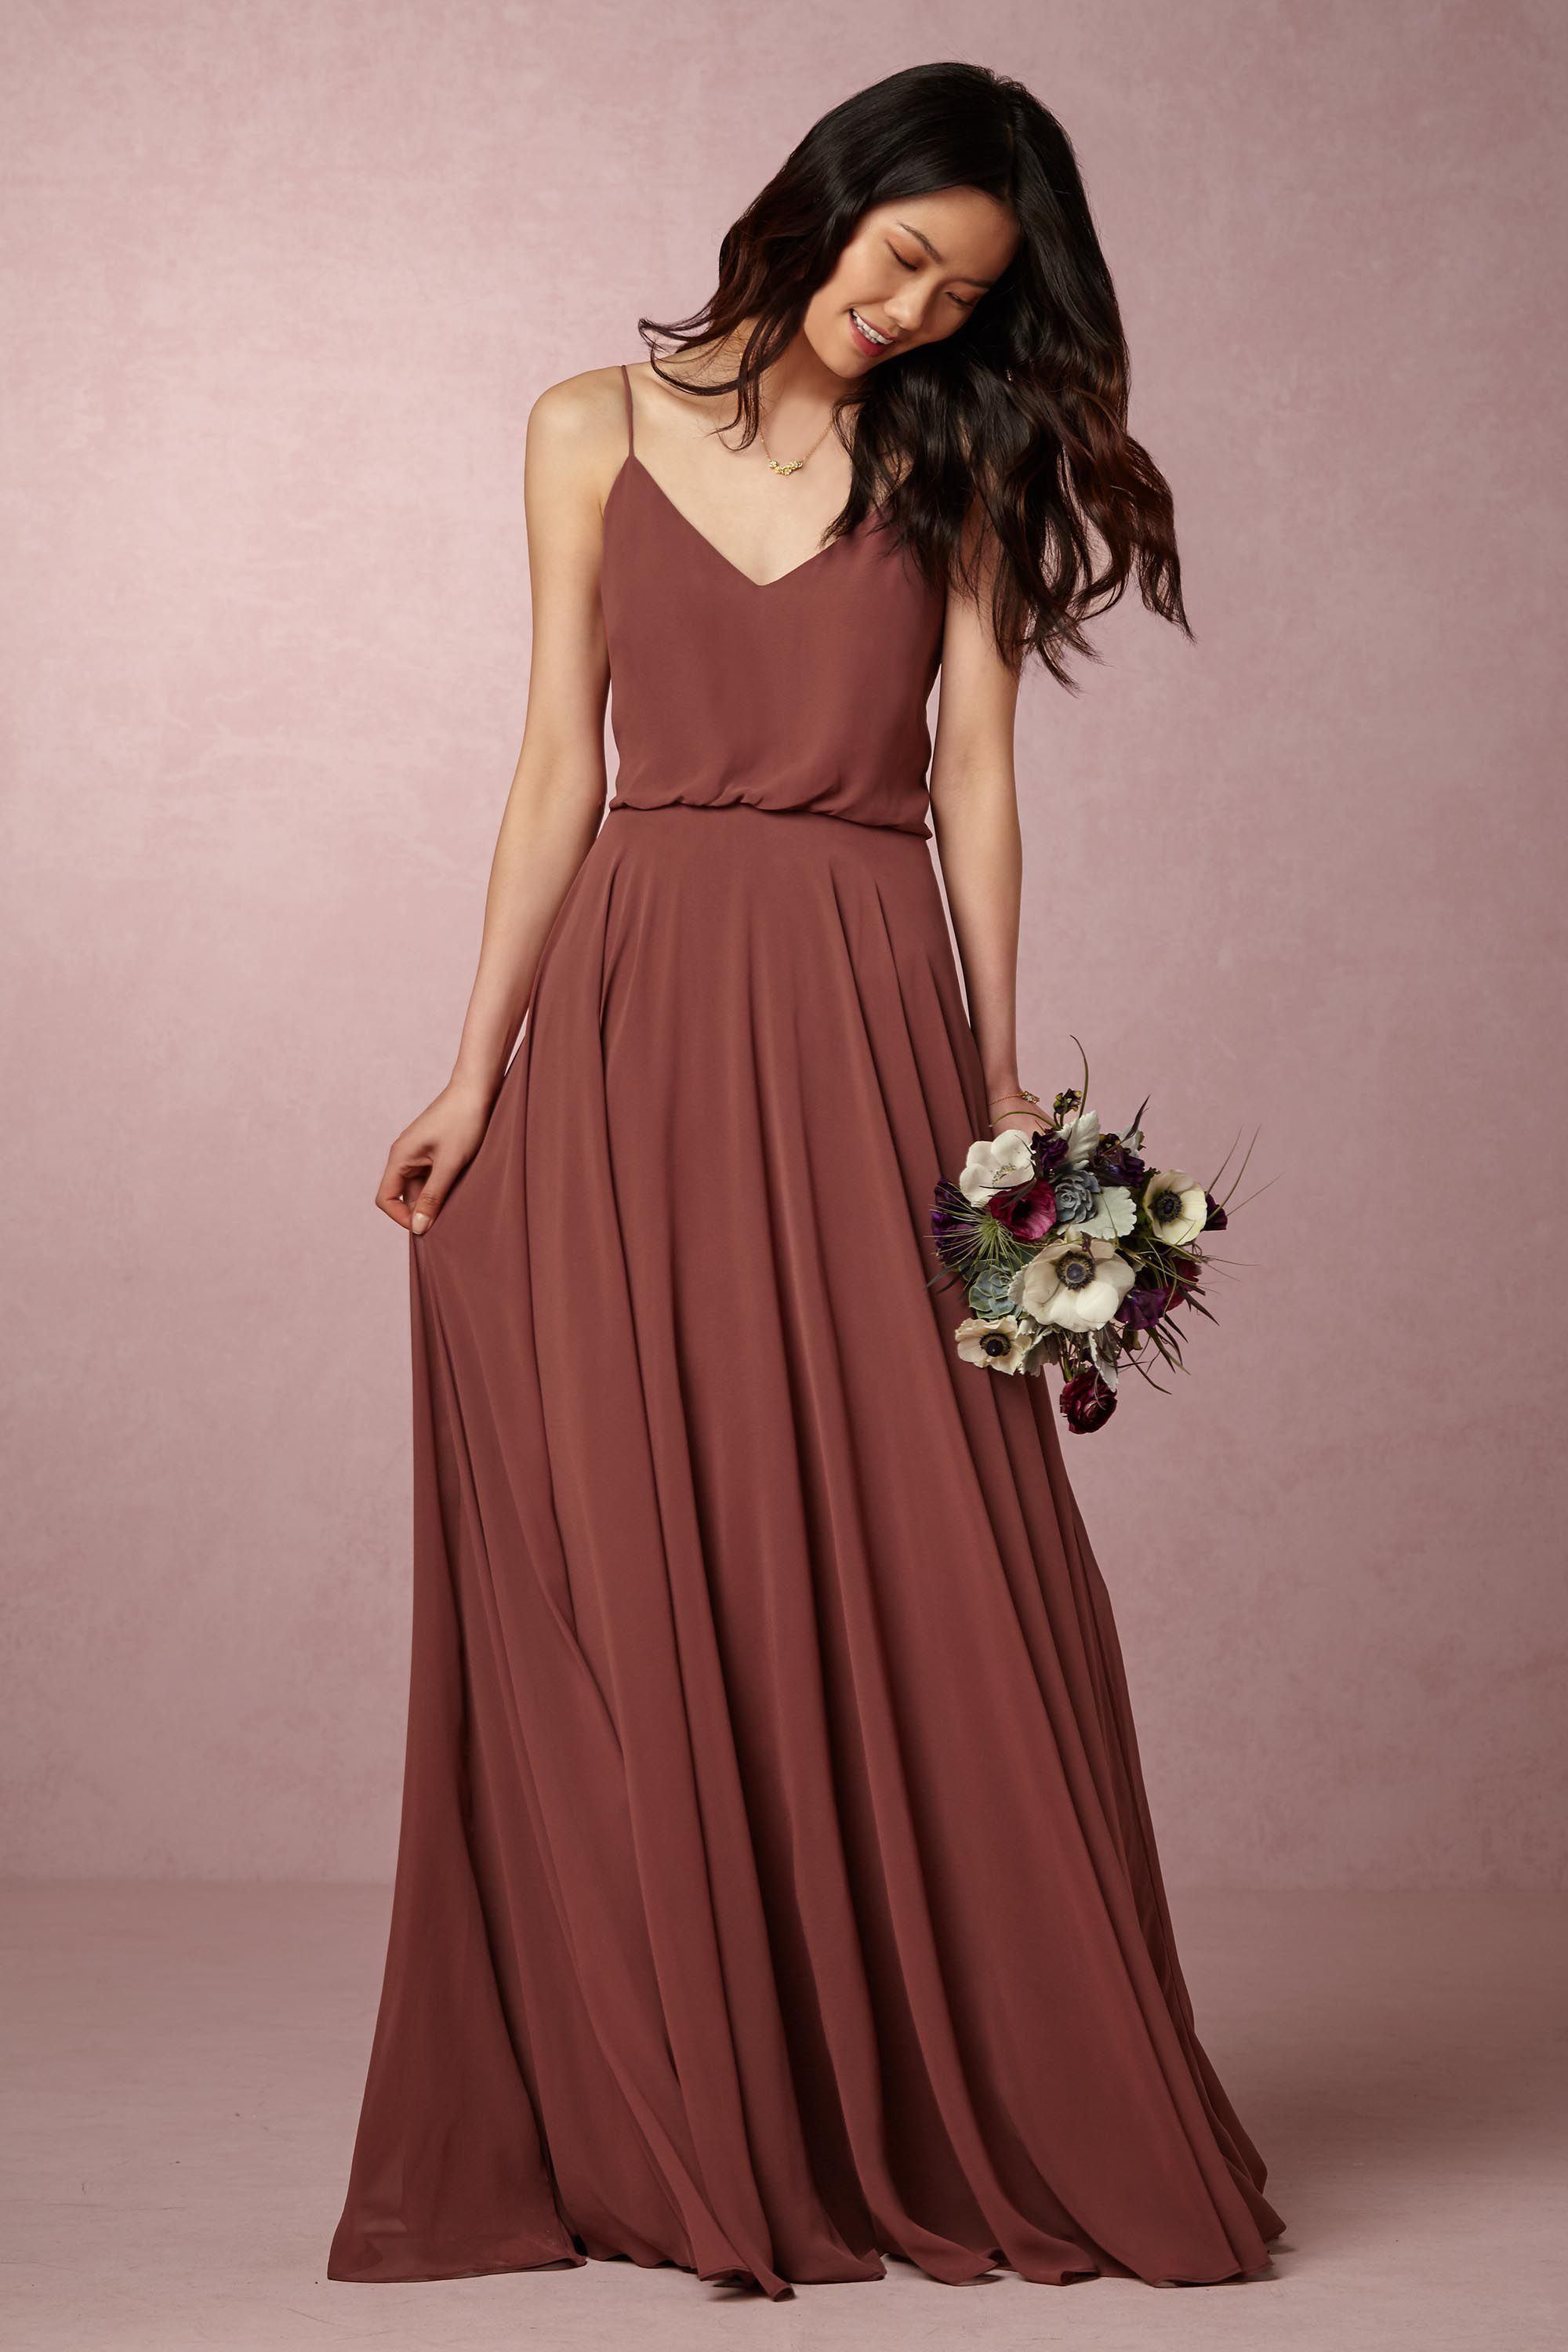 Glamorous dresses for wedding Ideas for a fashionable look - Top